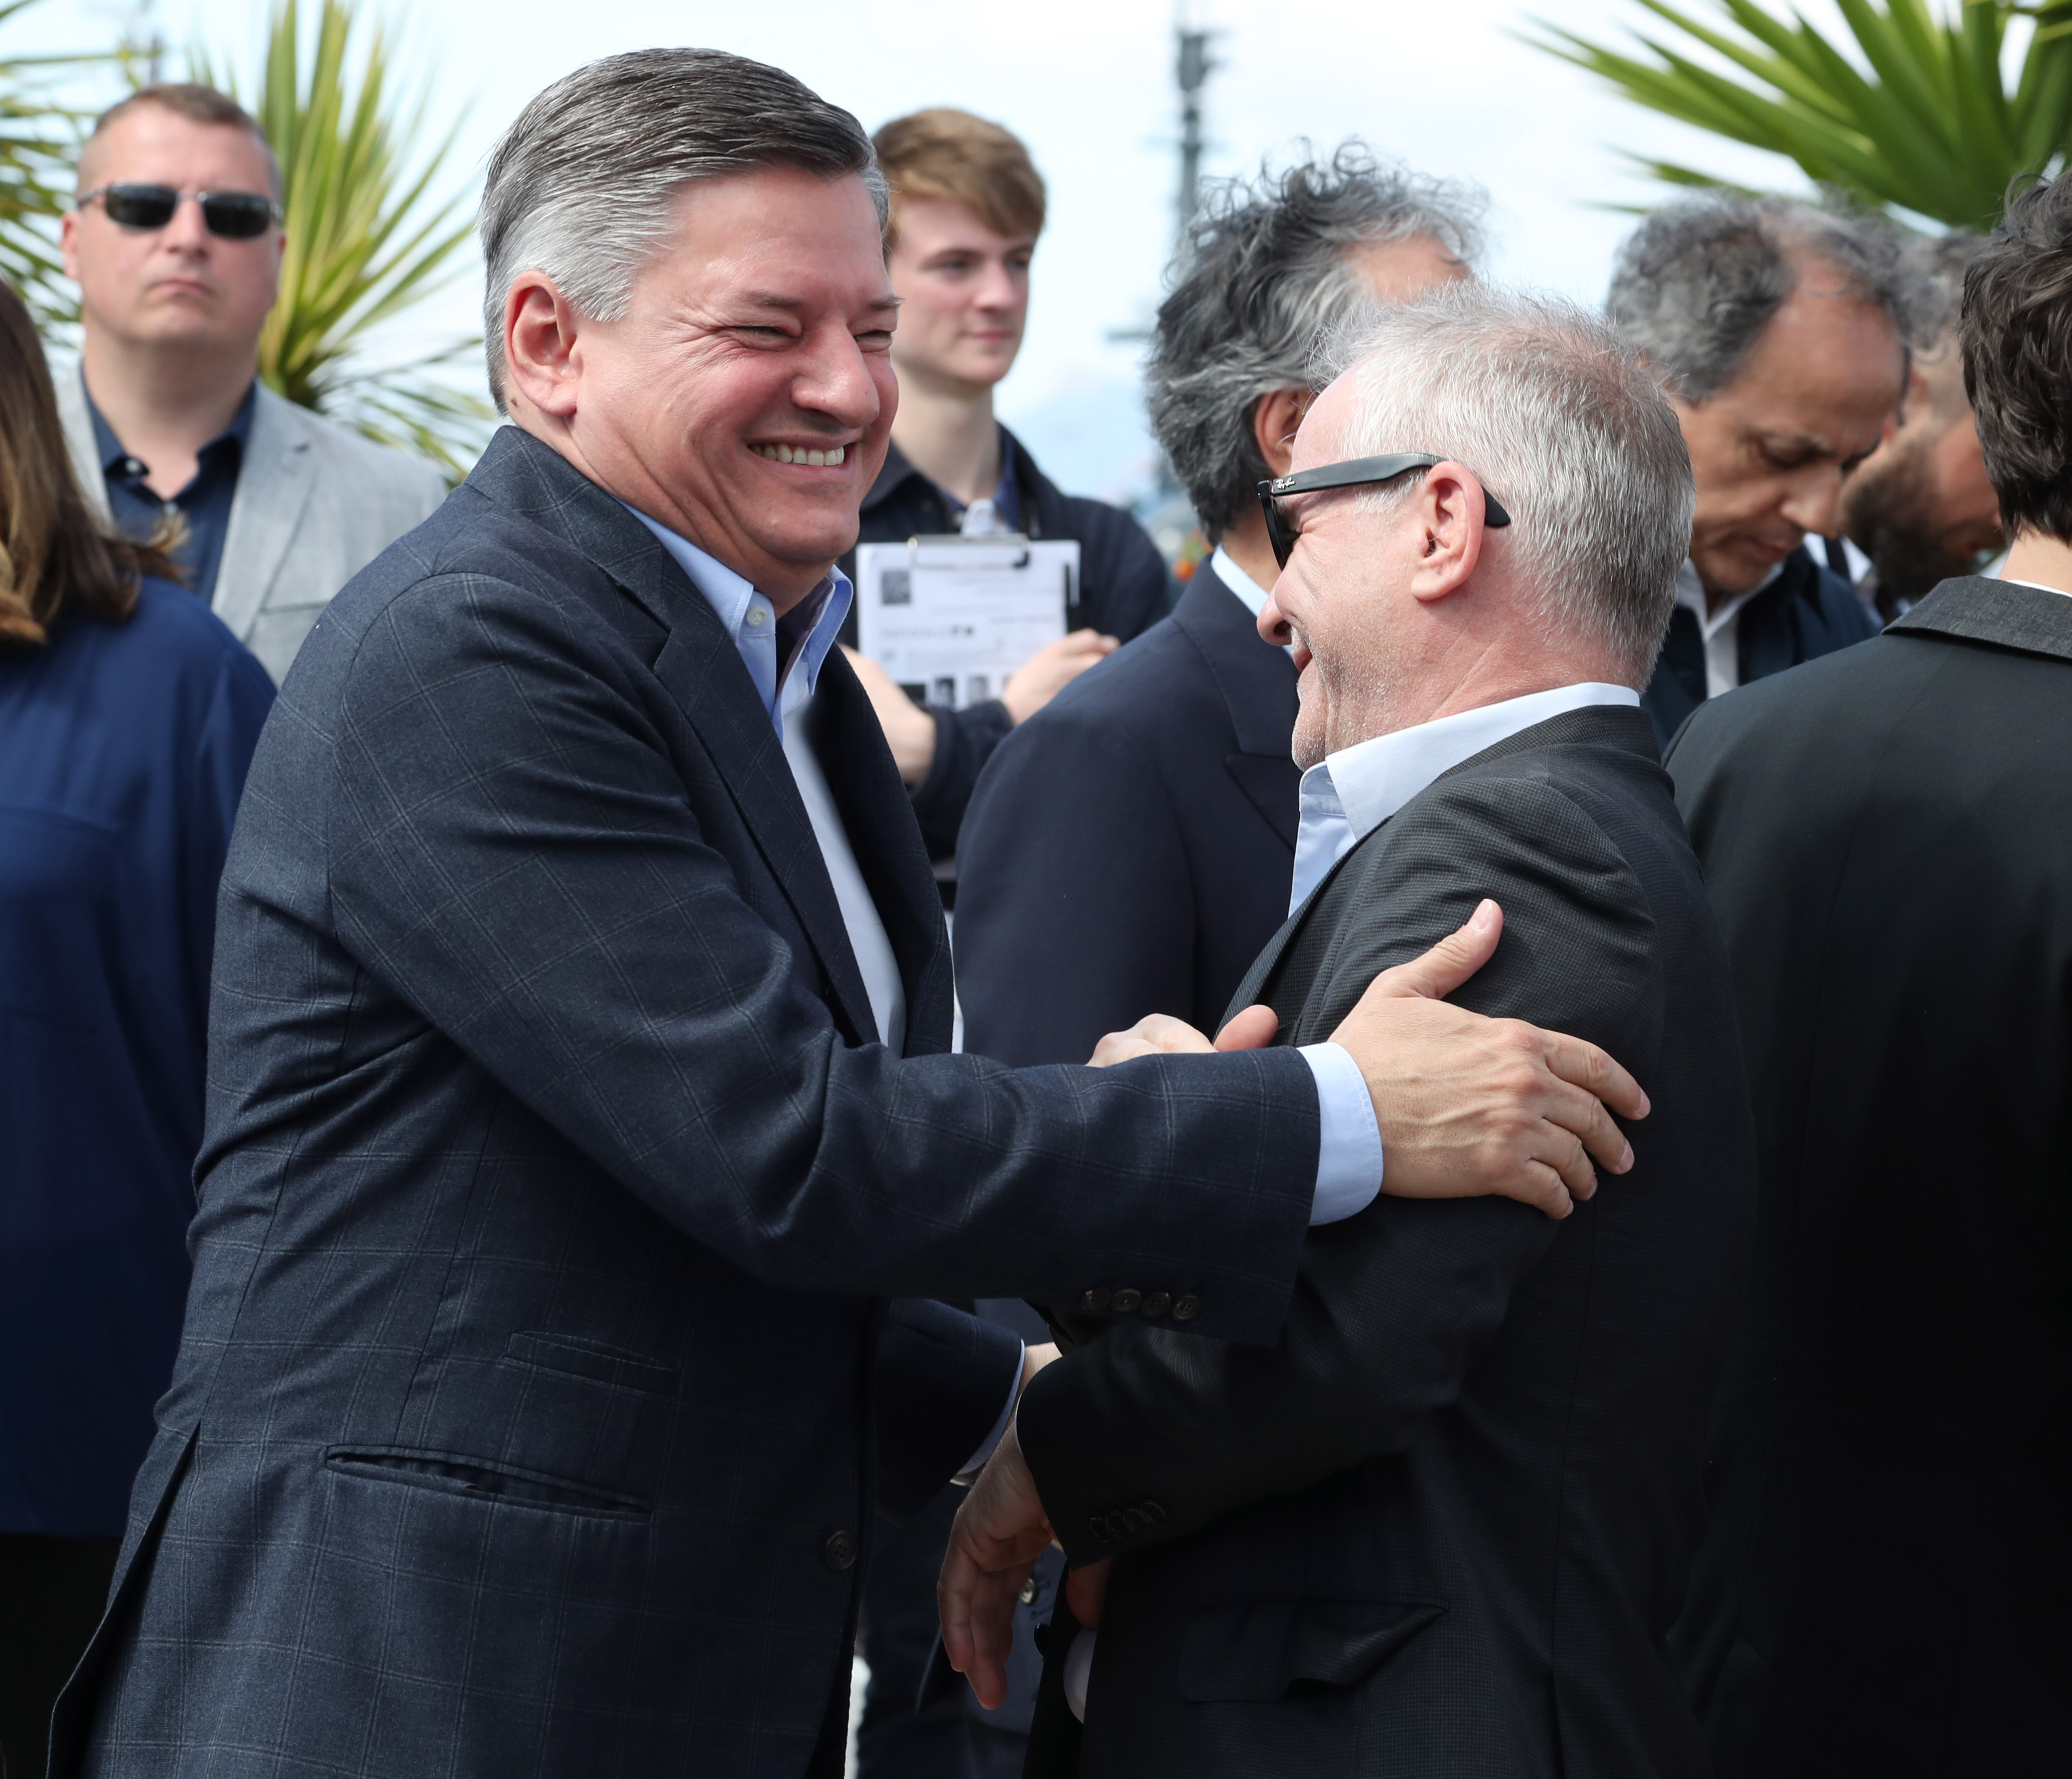 """Ted Sarandos and Thierry Fremaux """"Okay Photo Call, 70's Film Festival in Cannes, France - May 19, 2017"""